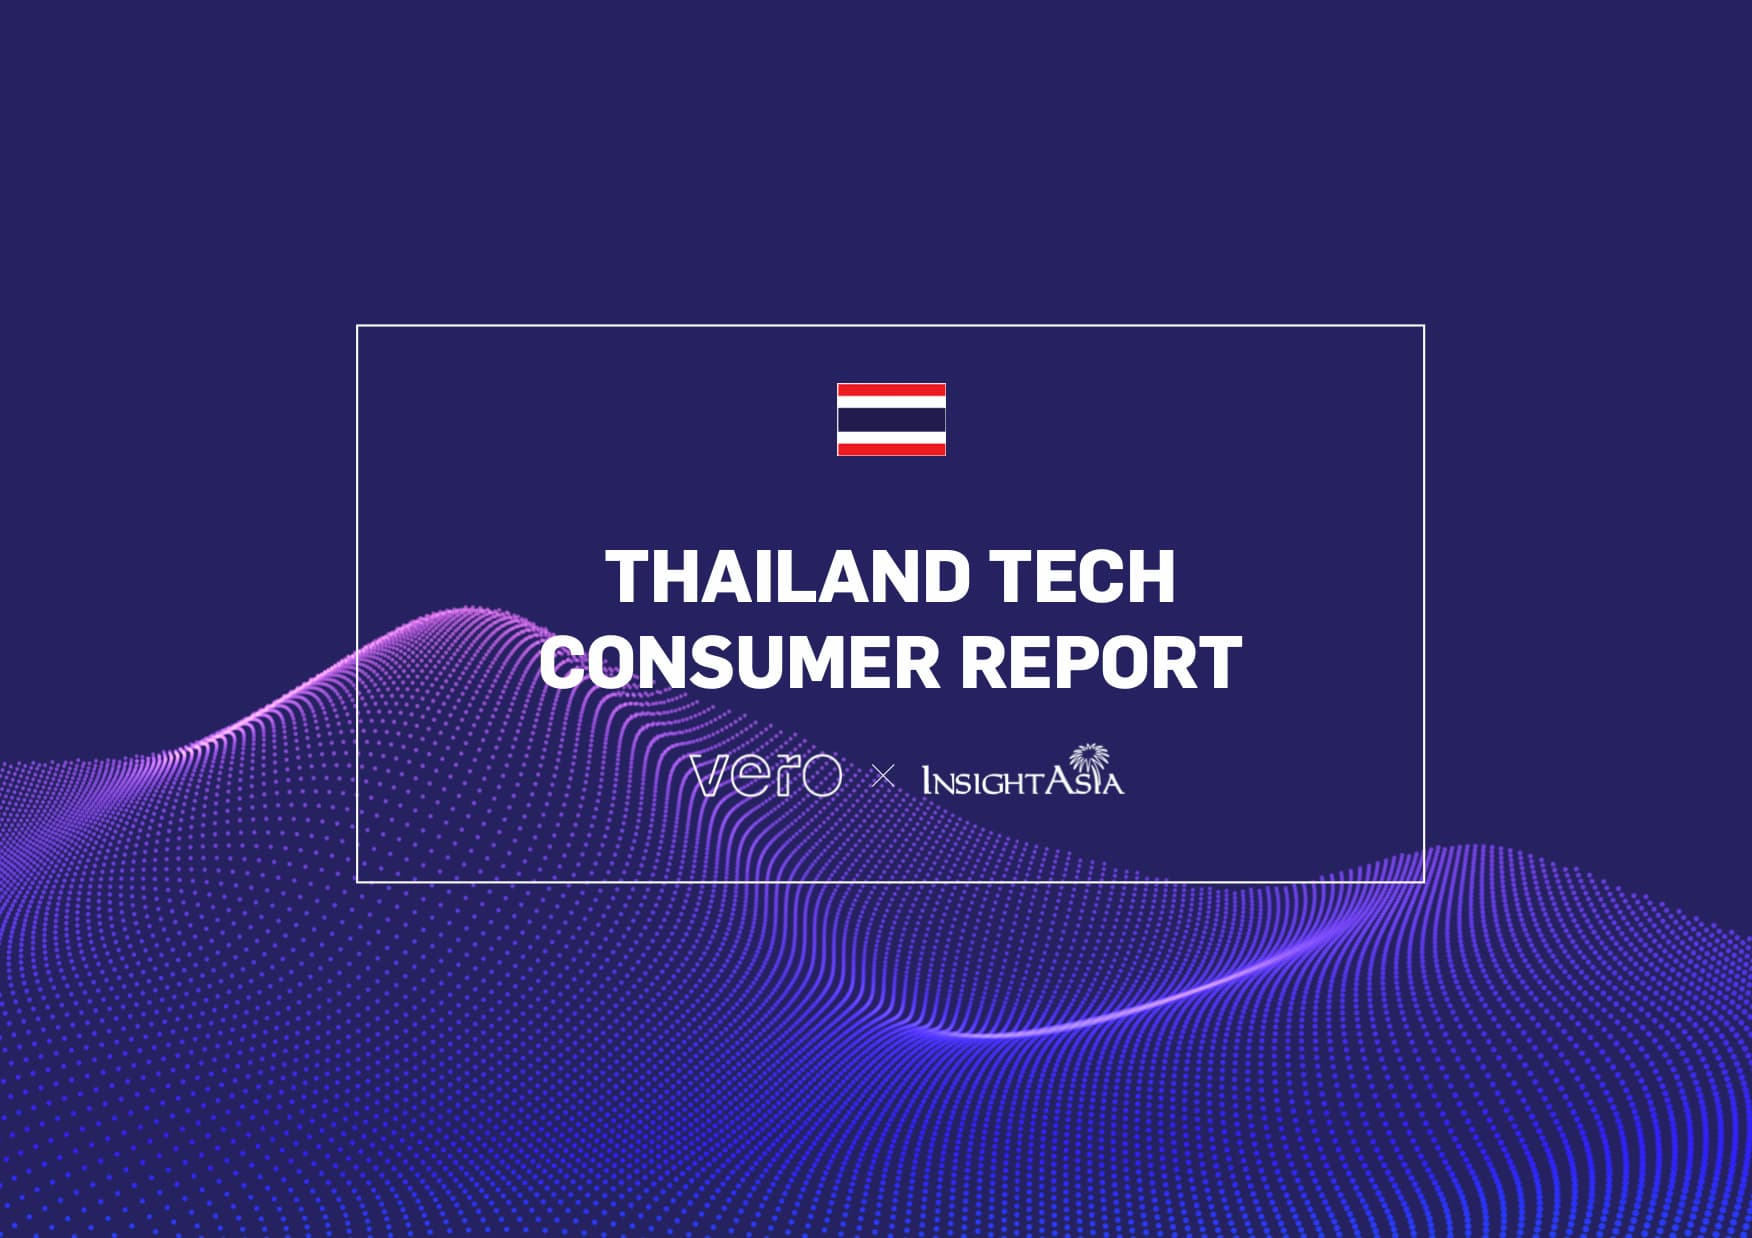 Reputation of big tech poised to surge in Thailand